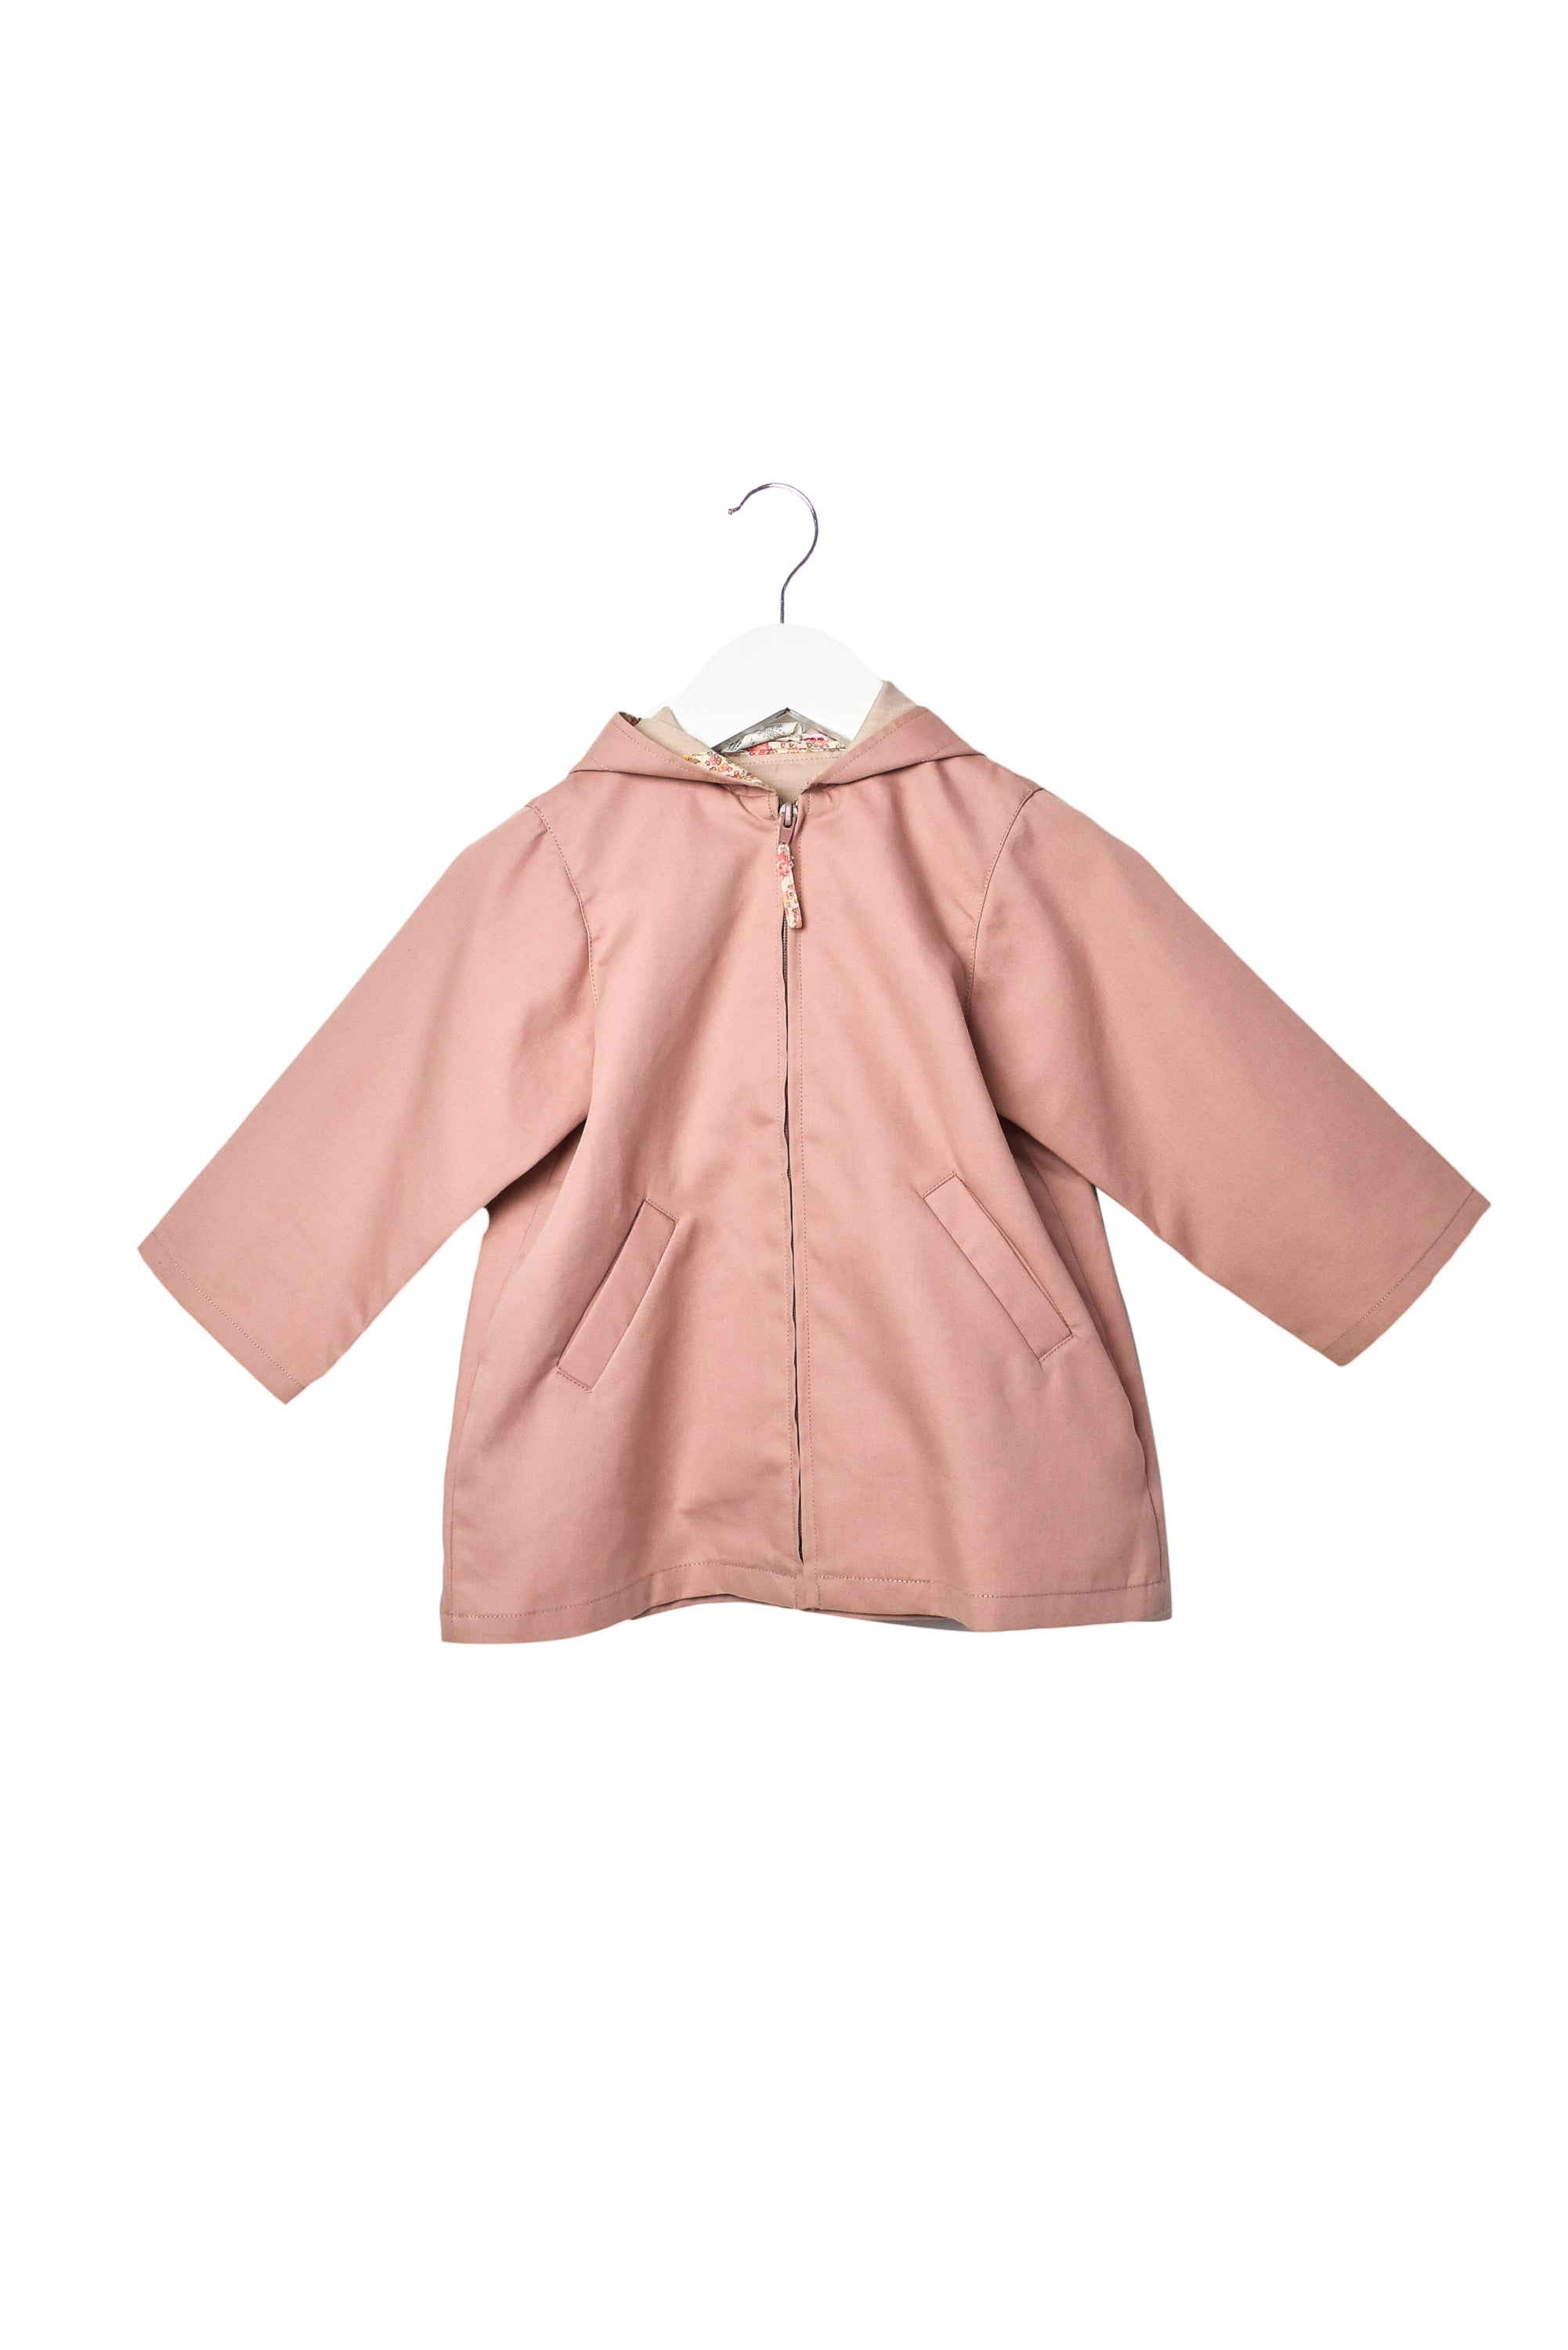 10008043 Bonpoint Kids~ Jacket 2T at Retykle